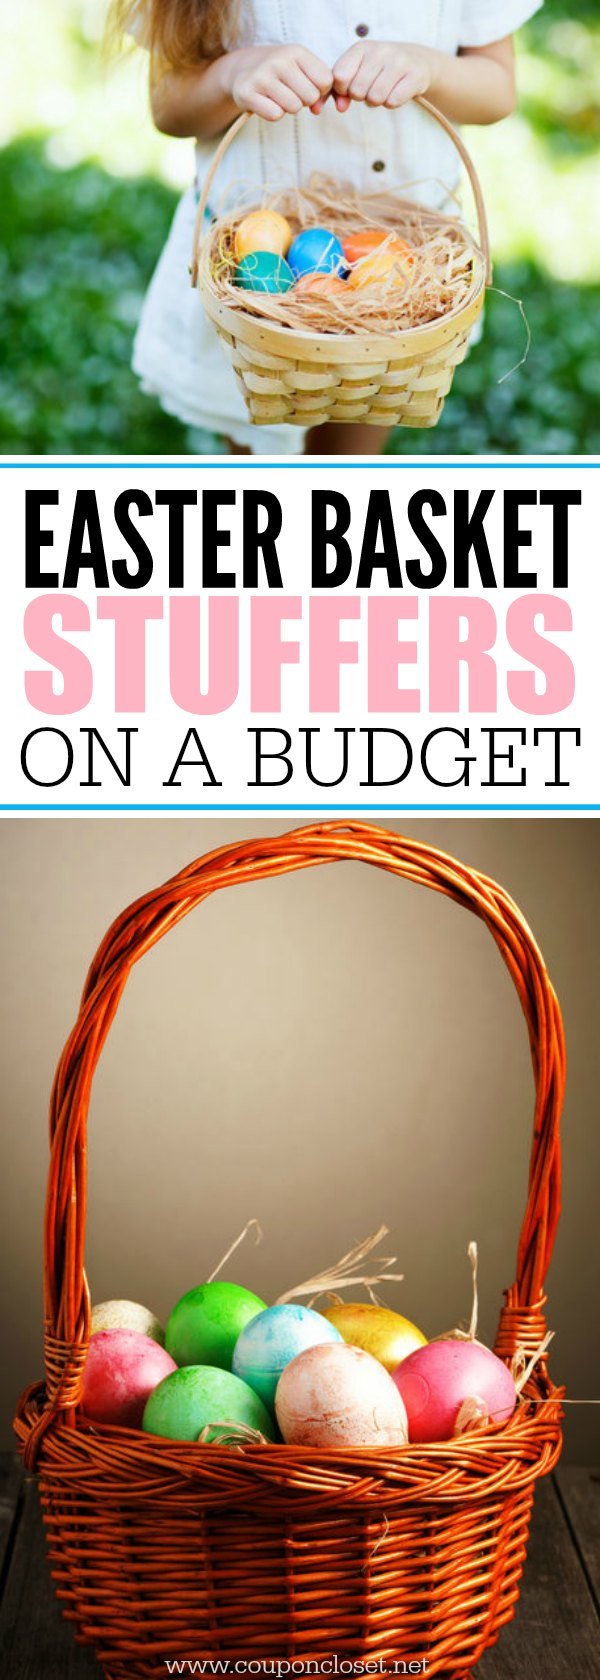 We have some fun Easter basket ideas. Here are 50 of the best easter basket stuffers for boys or girls. Save money on these Easter Basket stuffers.